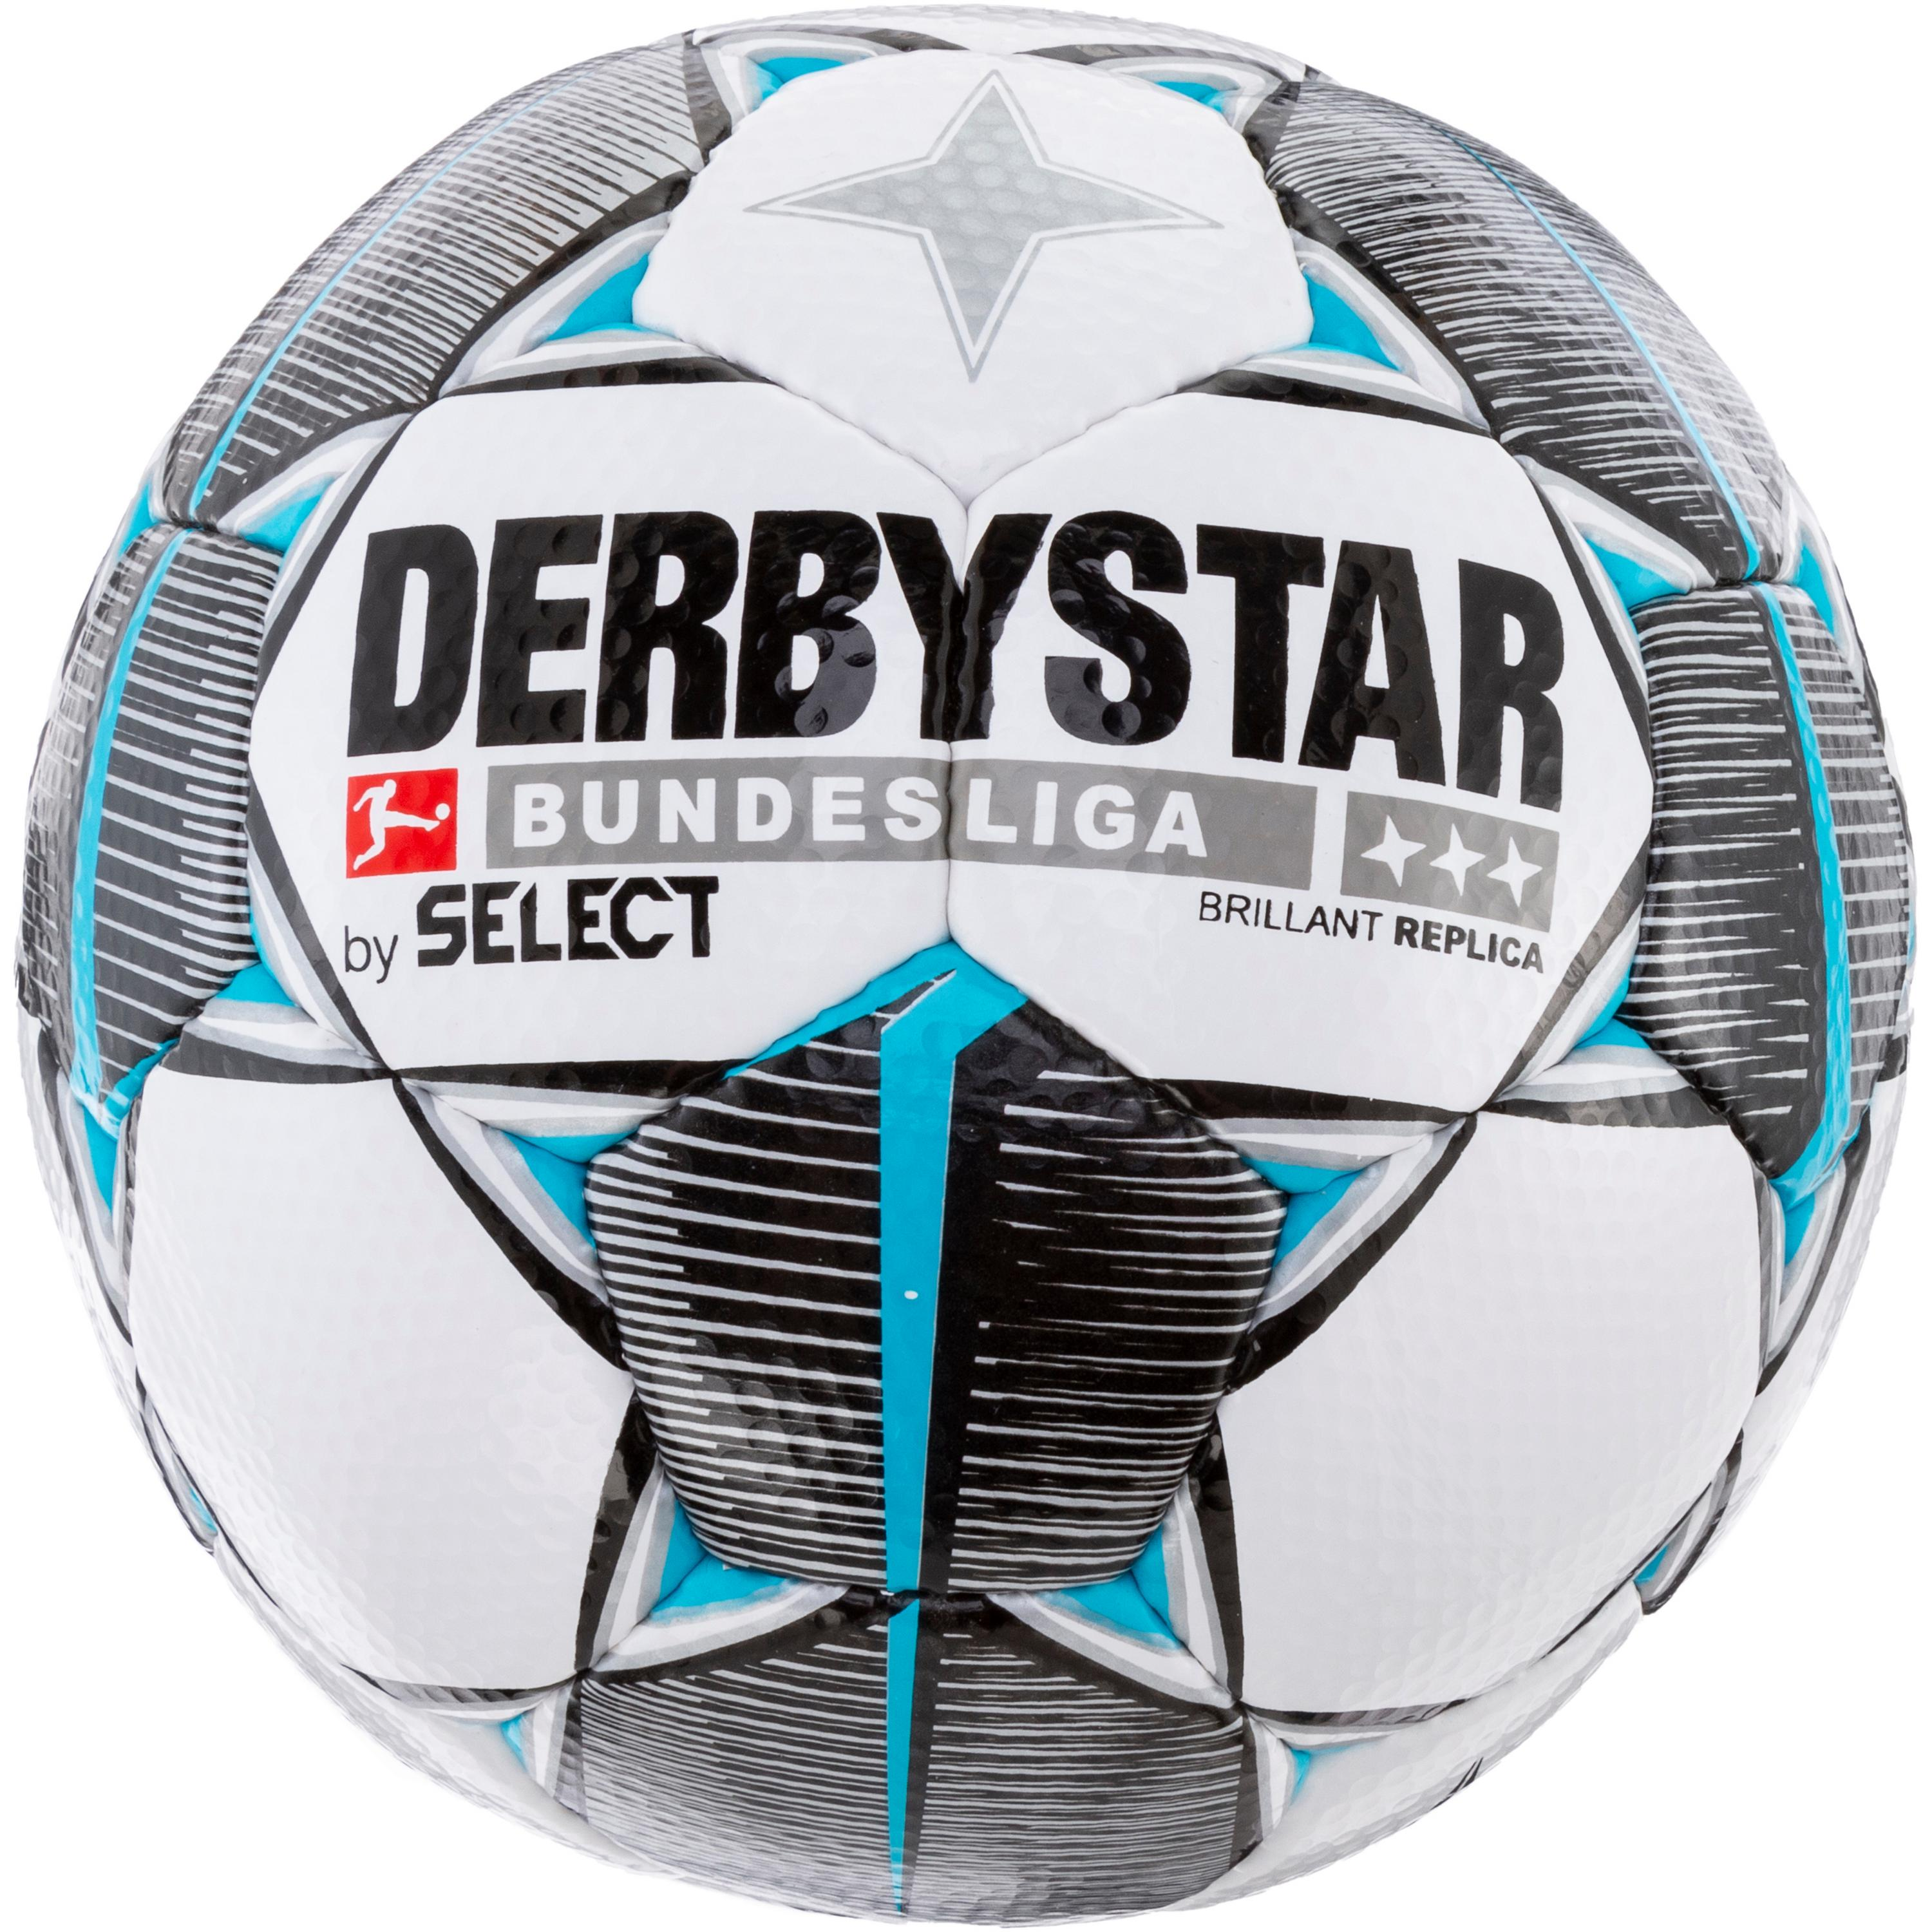 Derbystar Brilliant Bundesliga 19/20 Replica Fußball